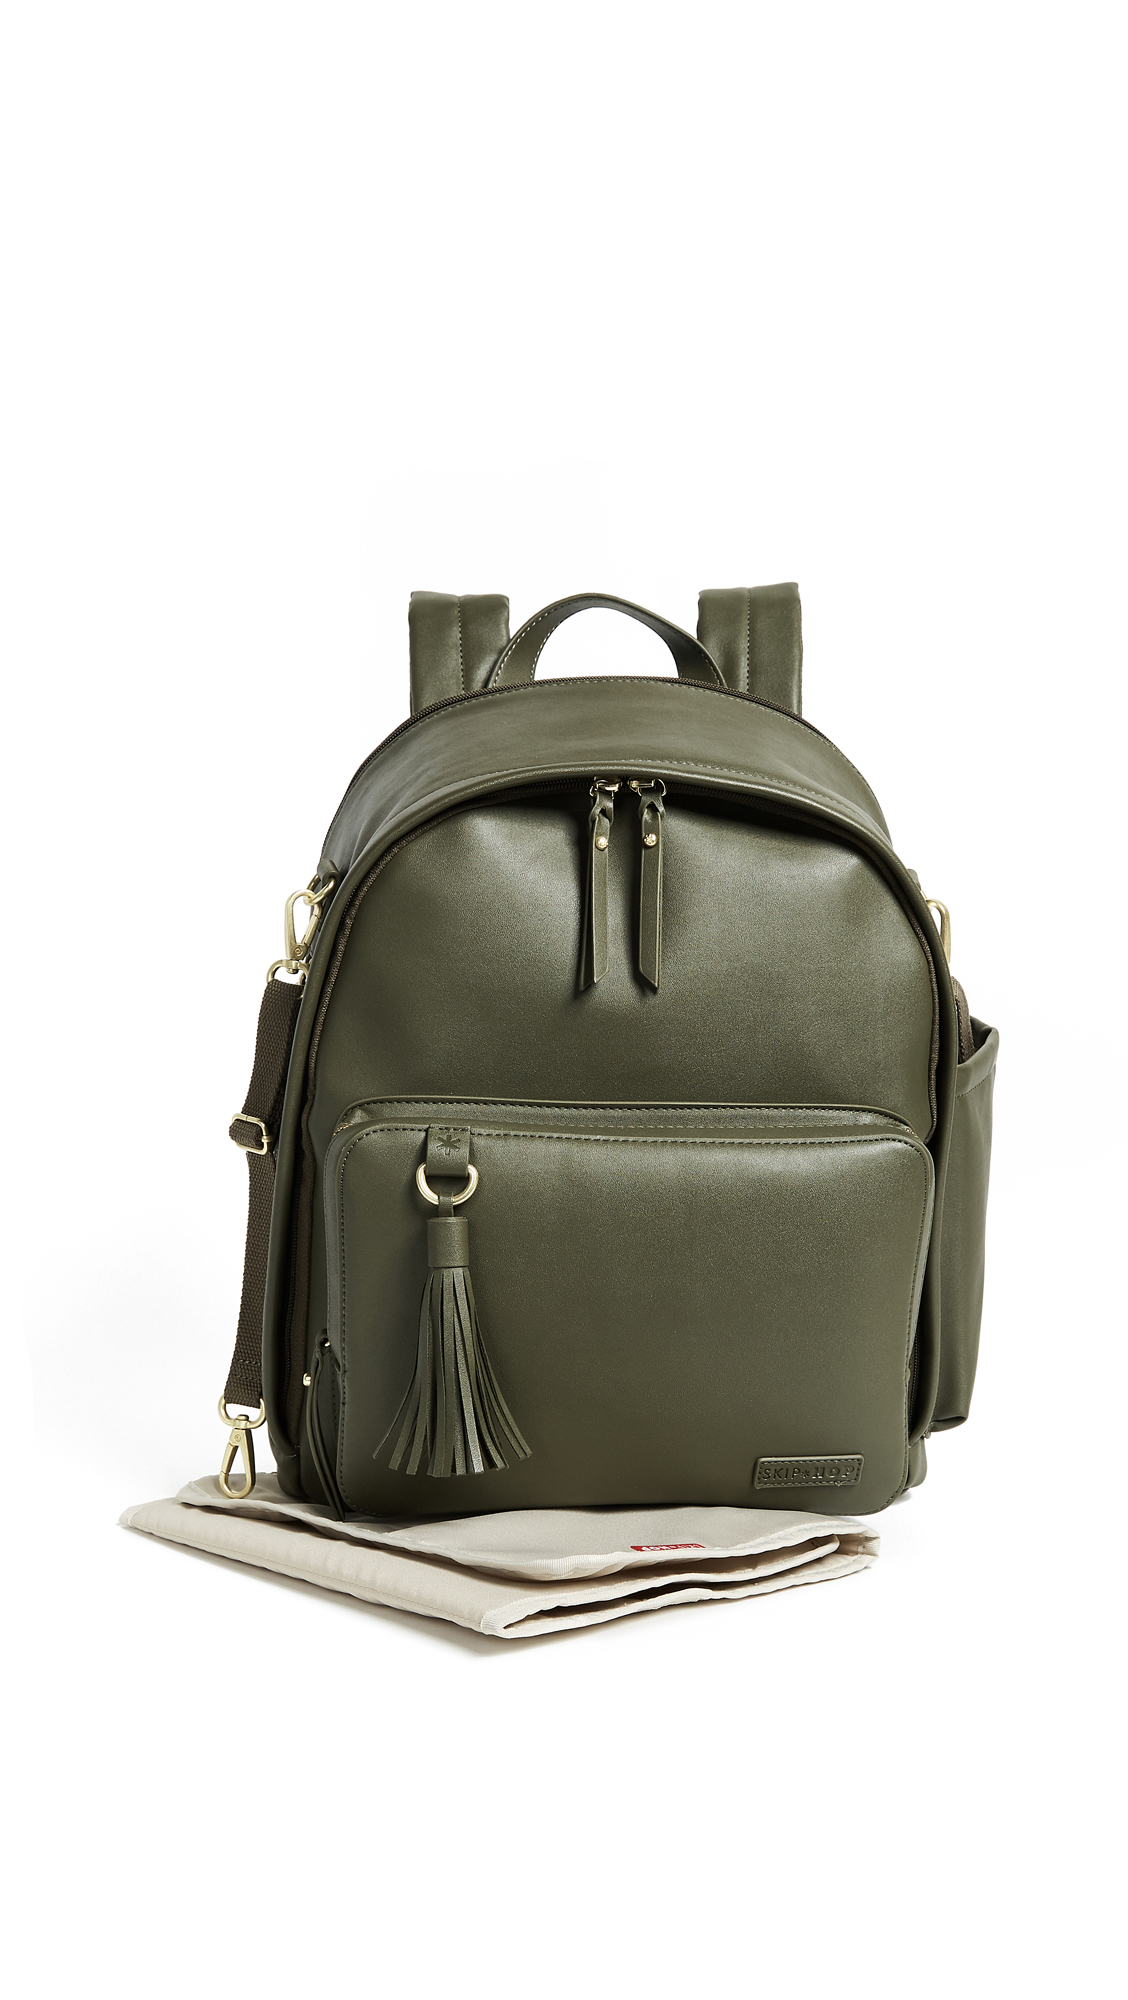 SKIP HOP Greenwich Simply Chic Diaper Backpack in Olive